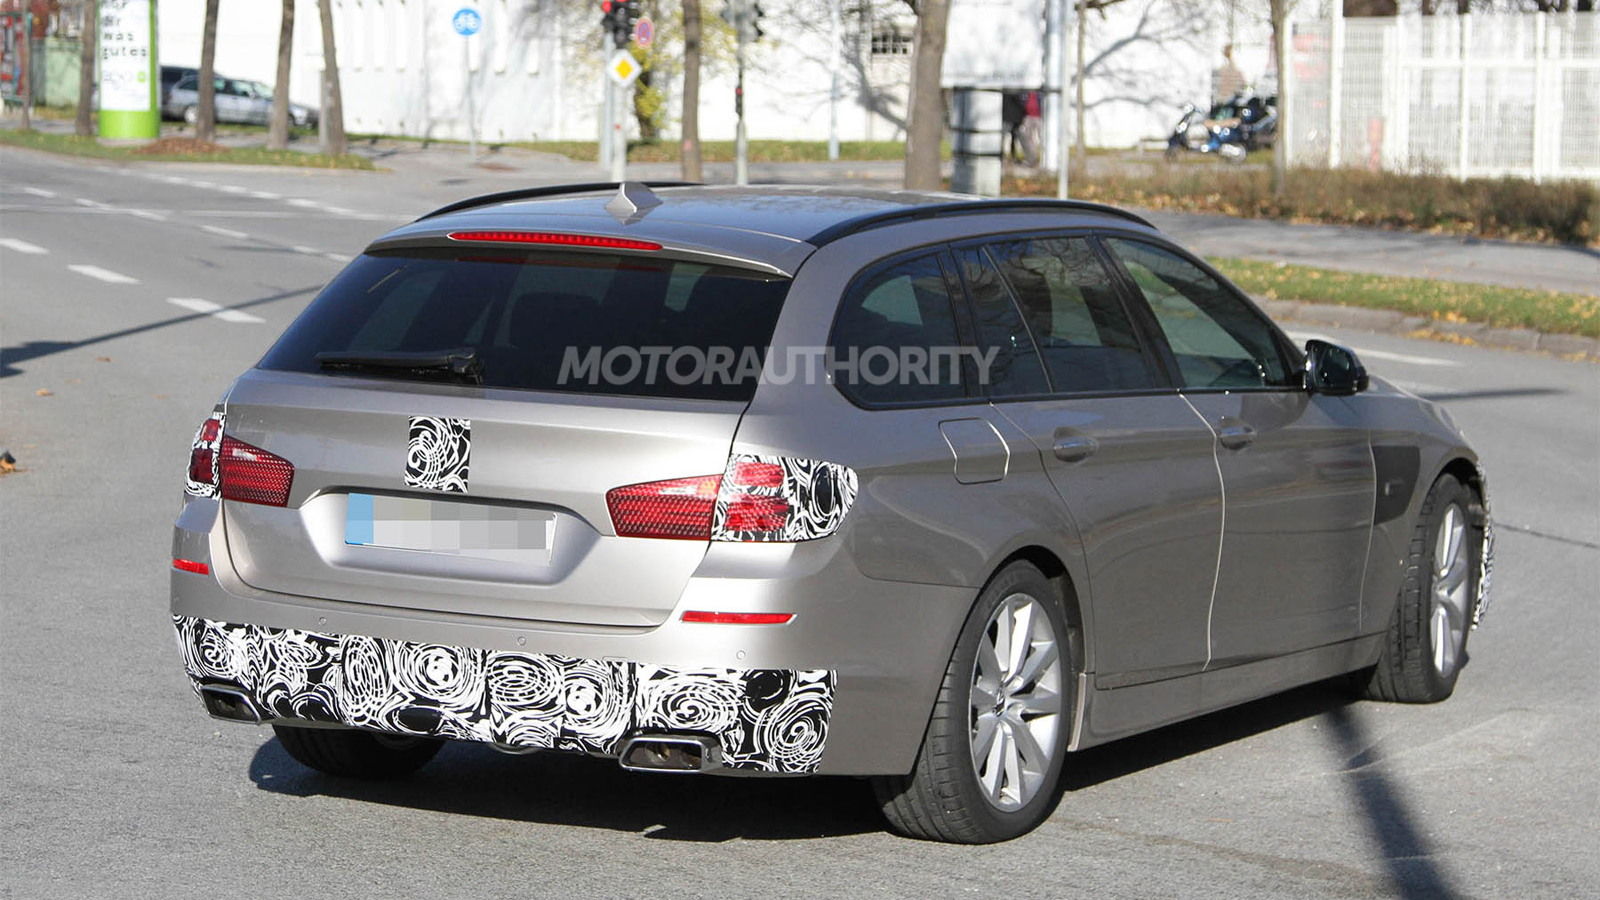 2014 BMW 5-Series Touring facelift spy shots